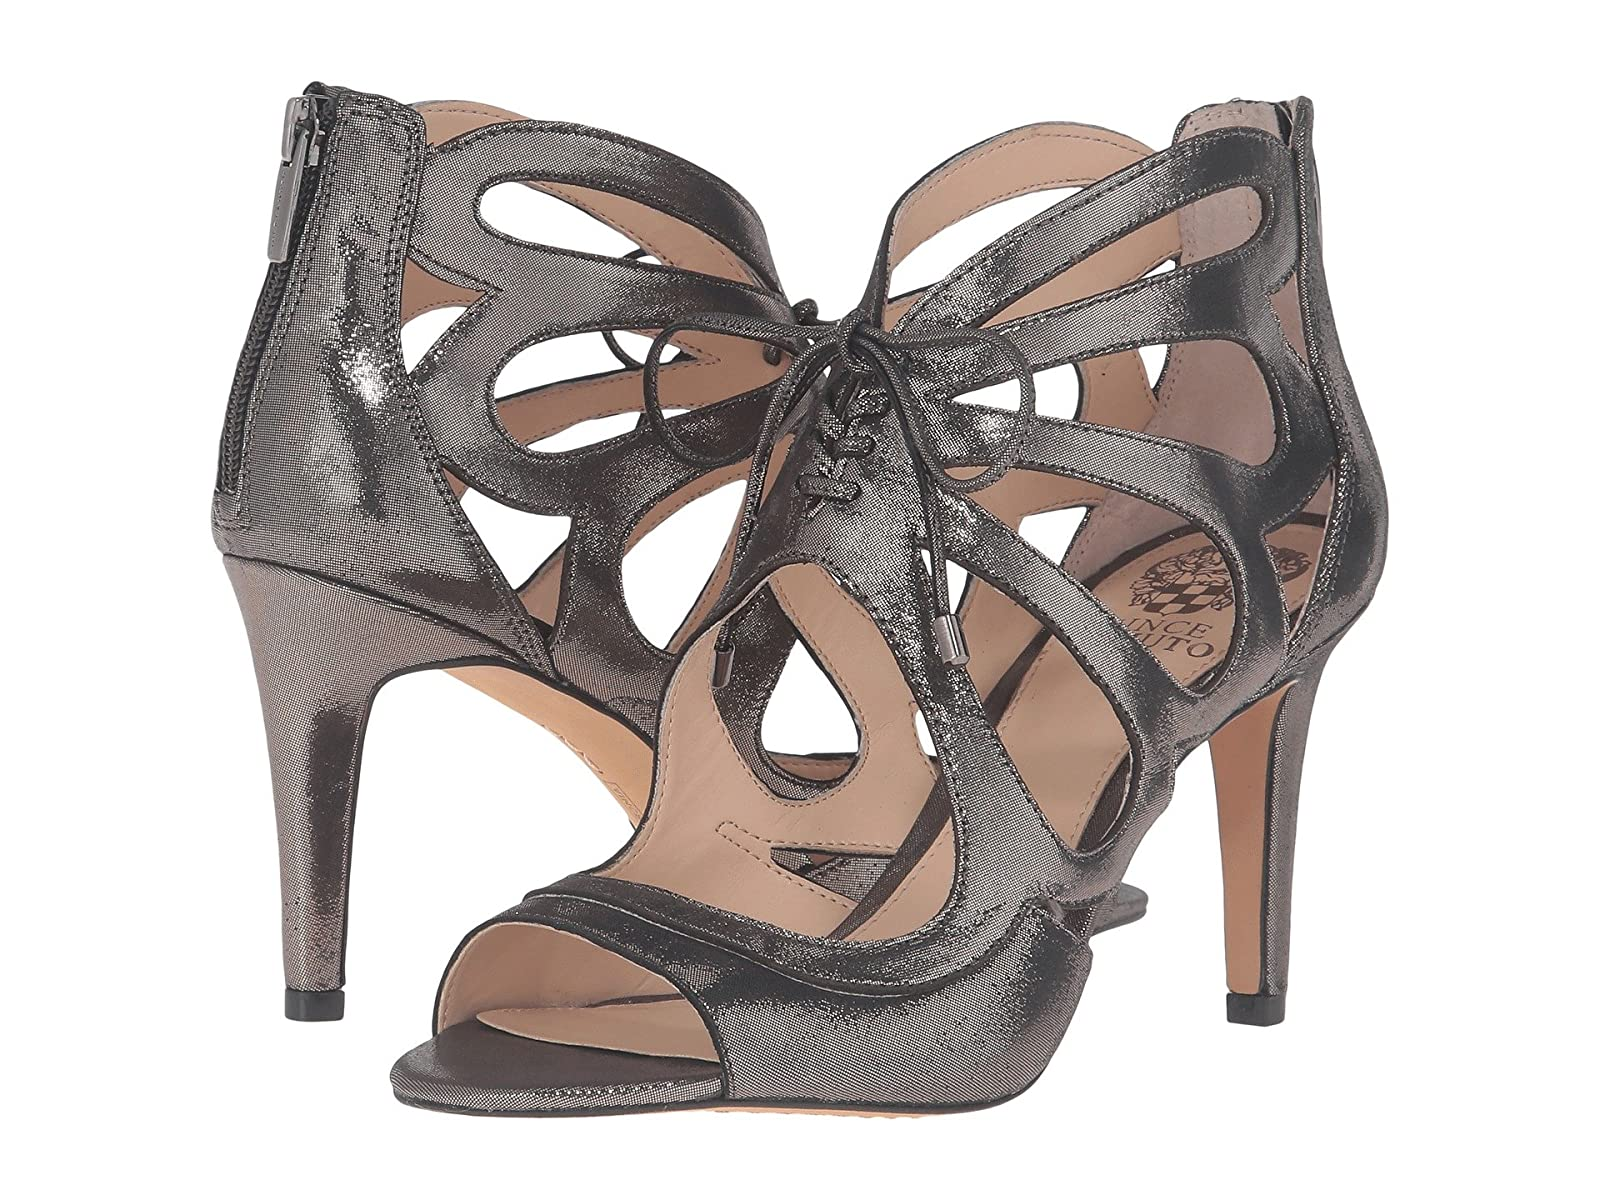 Vince Camuto CaliviaCheap and distinctive eye-catching shoes